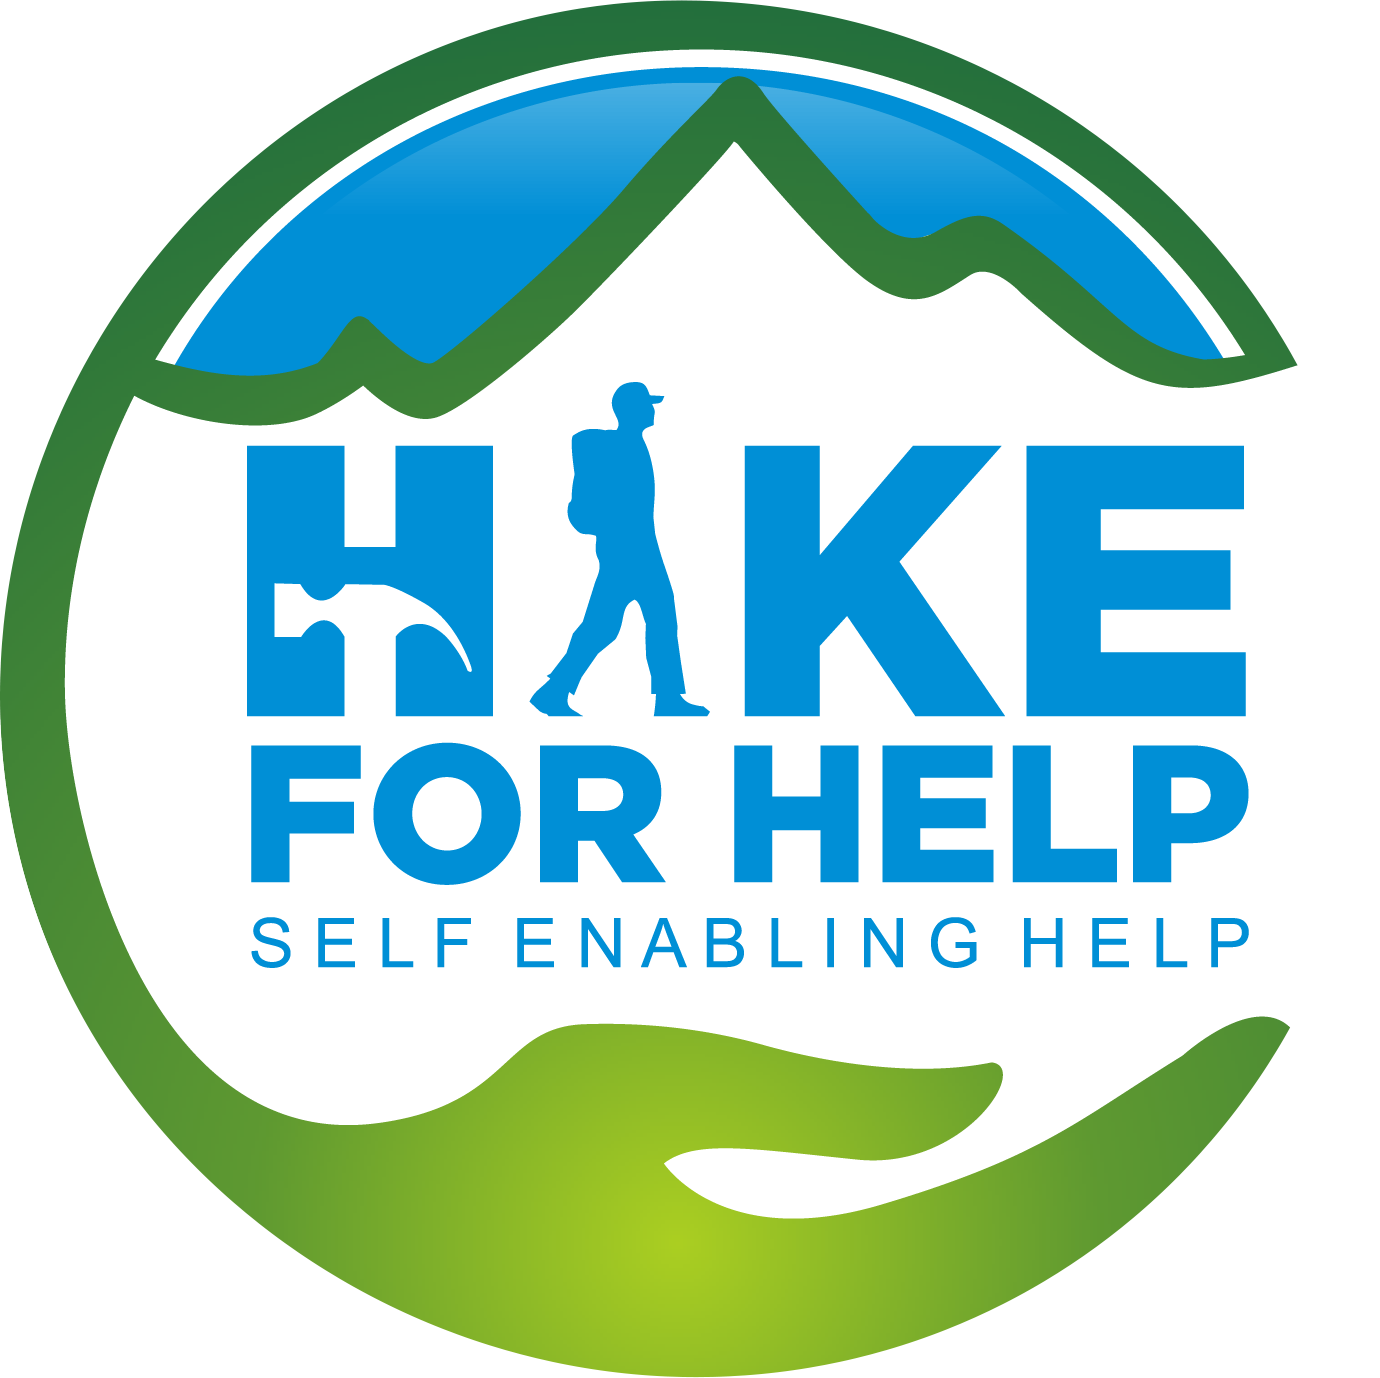 Hike for Help